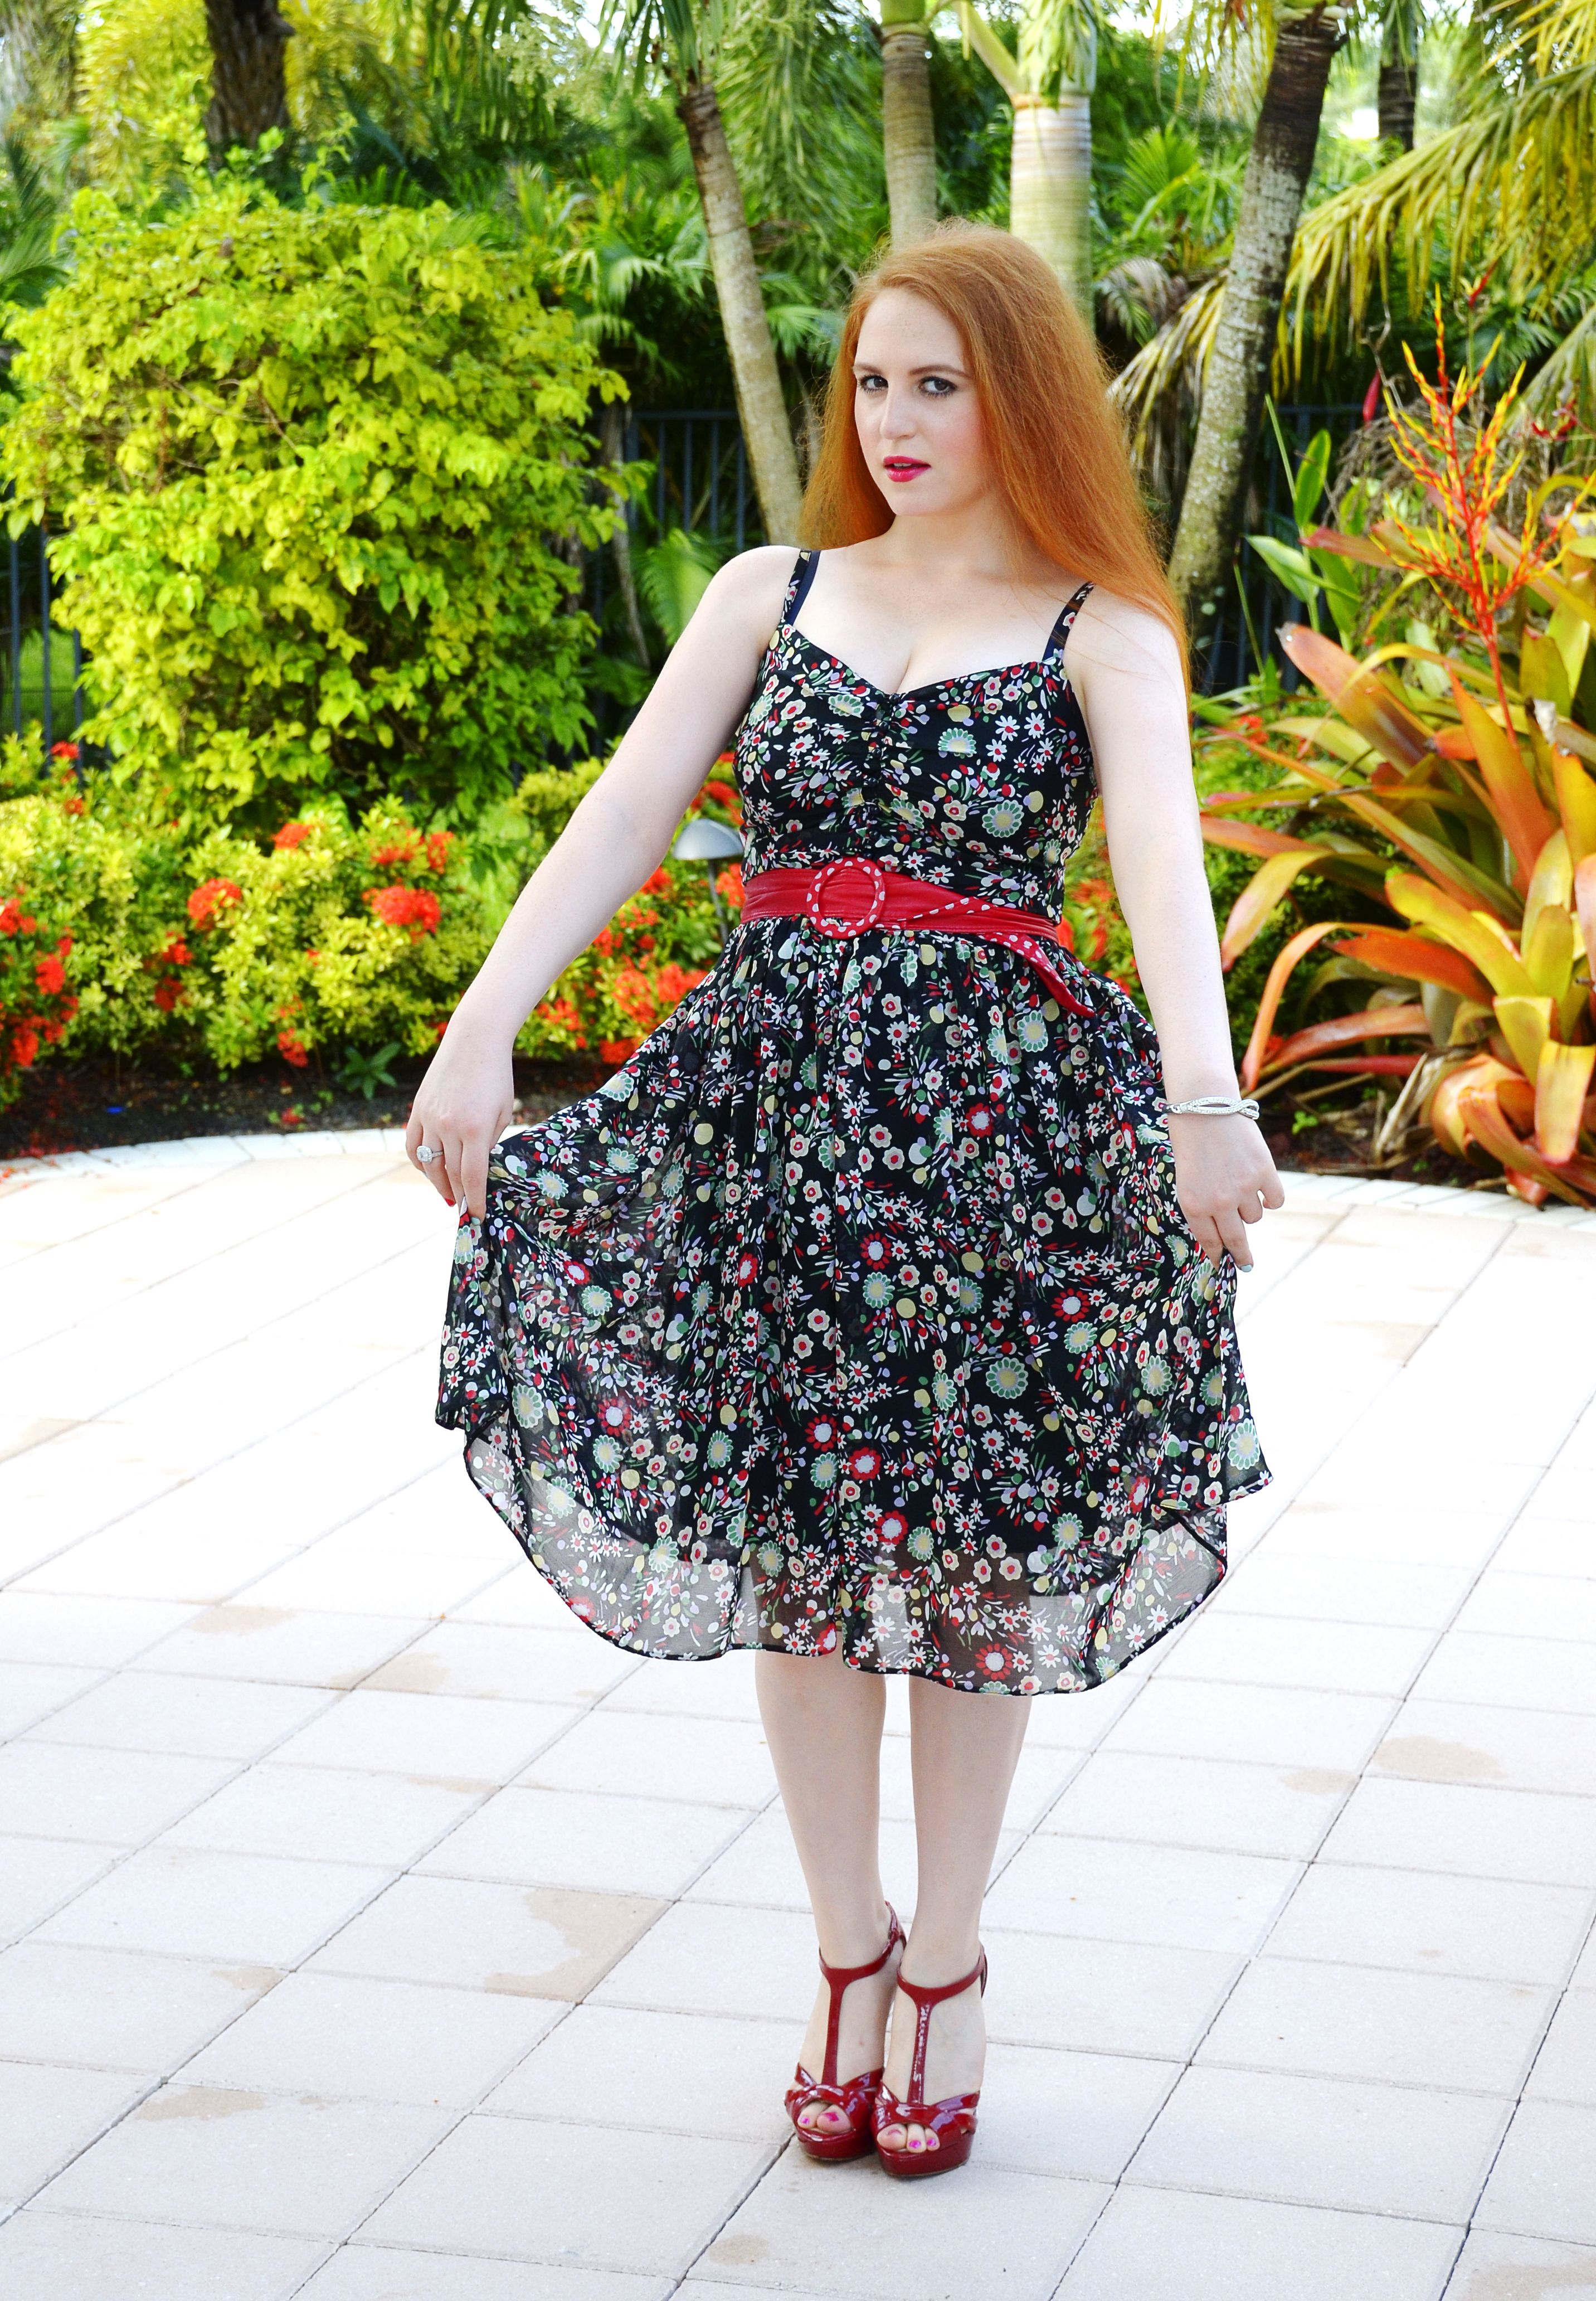 Black Dress With A Red Green And White Flower Print A Red Belt And Red Heels Fashion Twinvogue Fashion Floral Fashion Fashion Vogue [ 4128 x 2864 Pixel ]